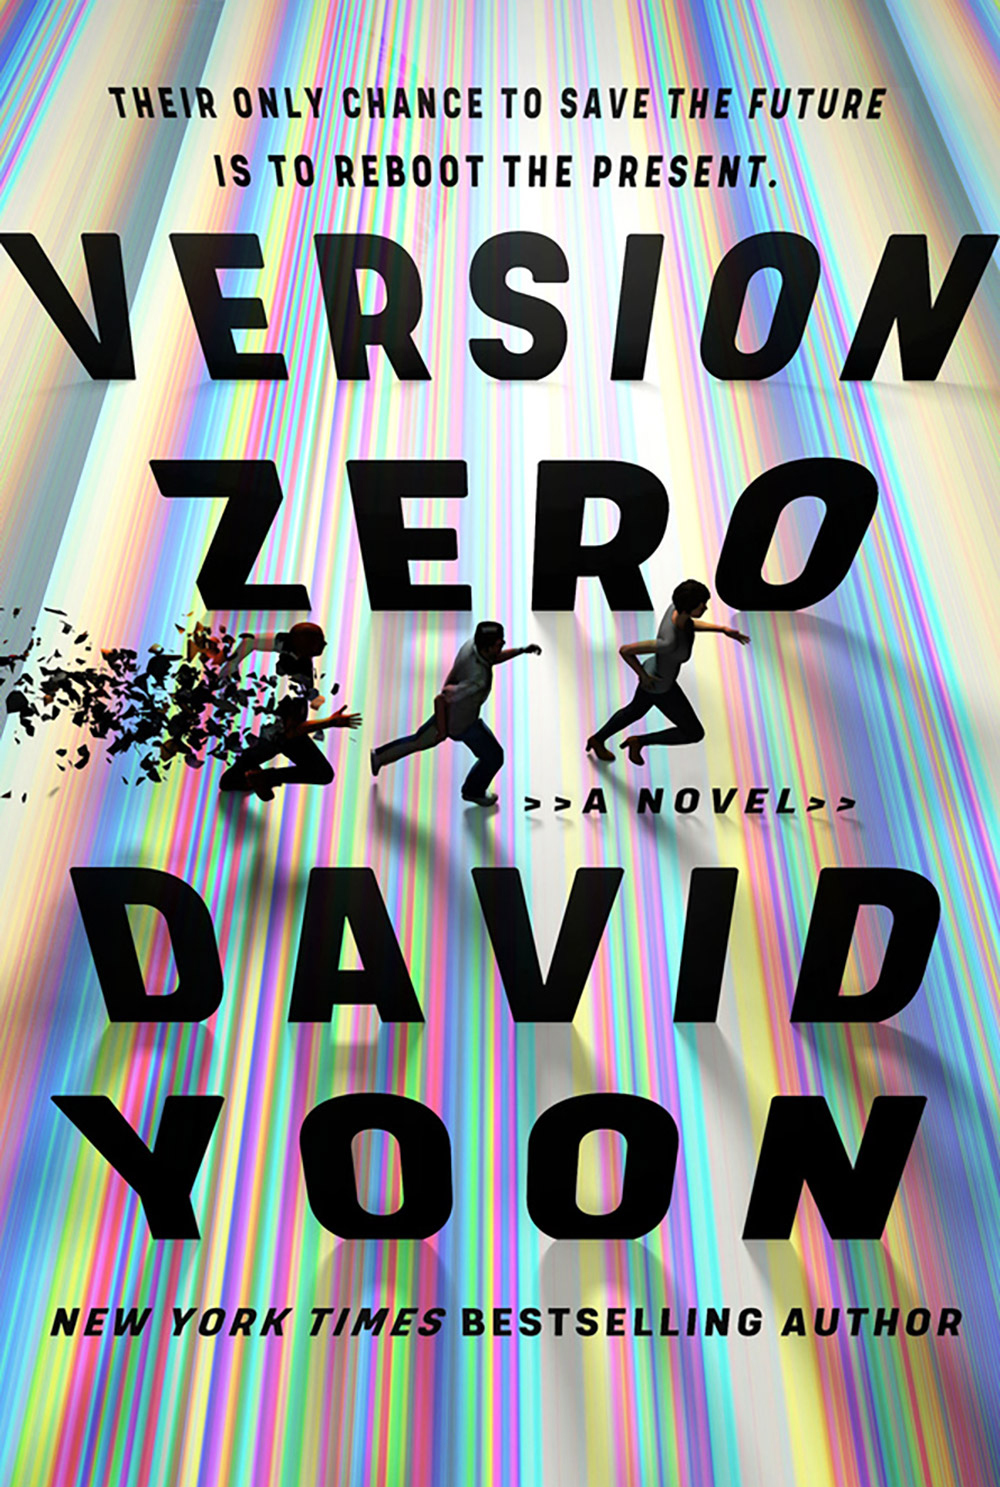 Version Zero By David Yoon